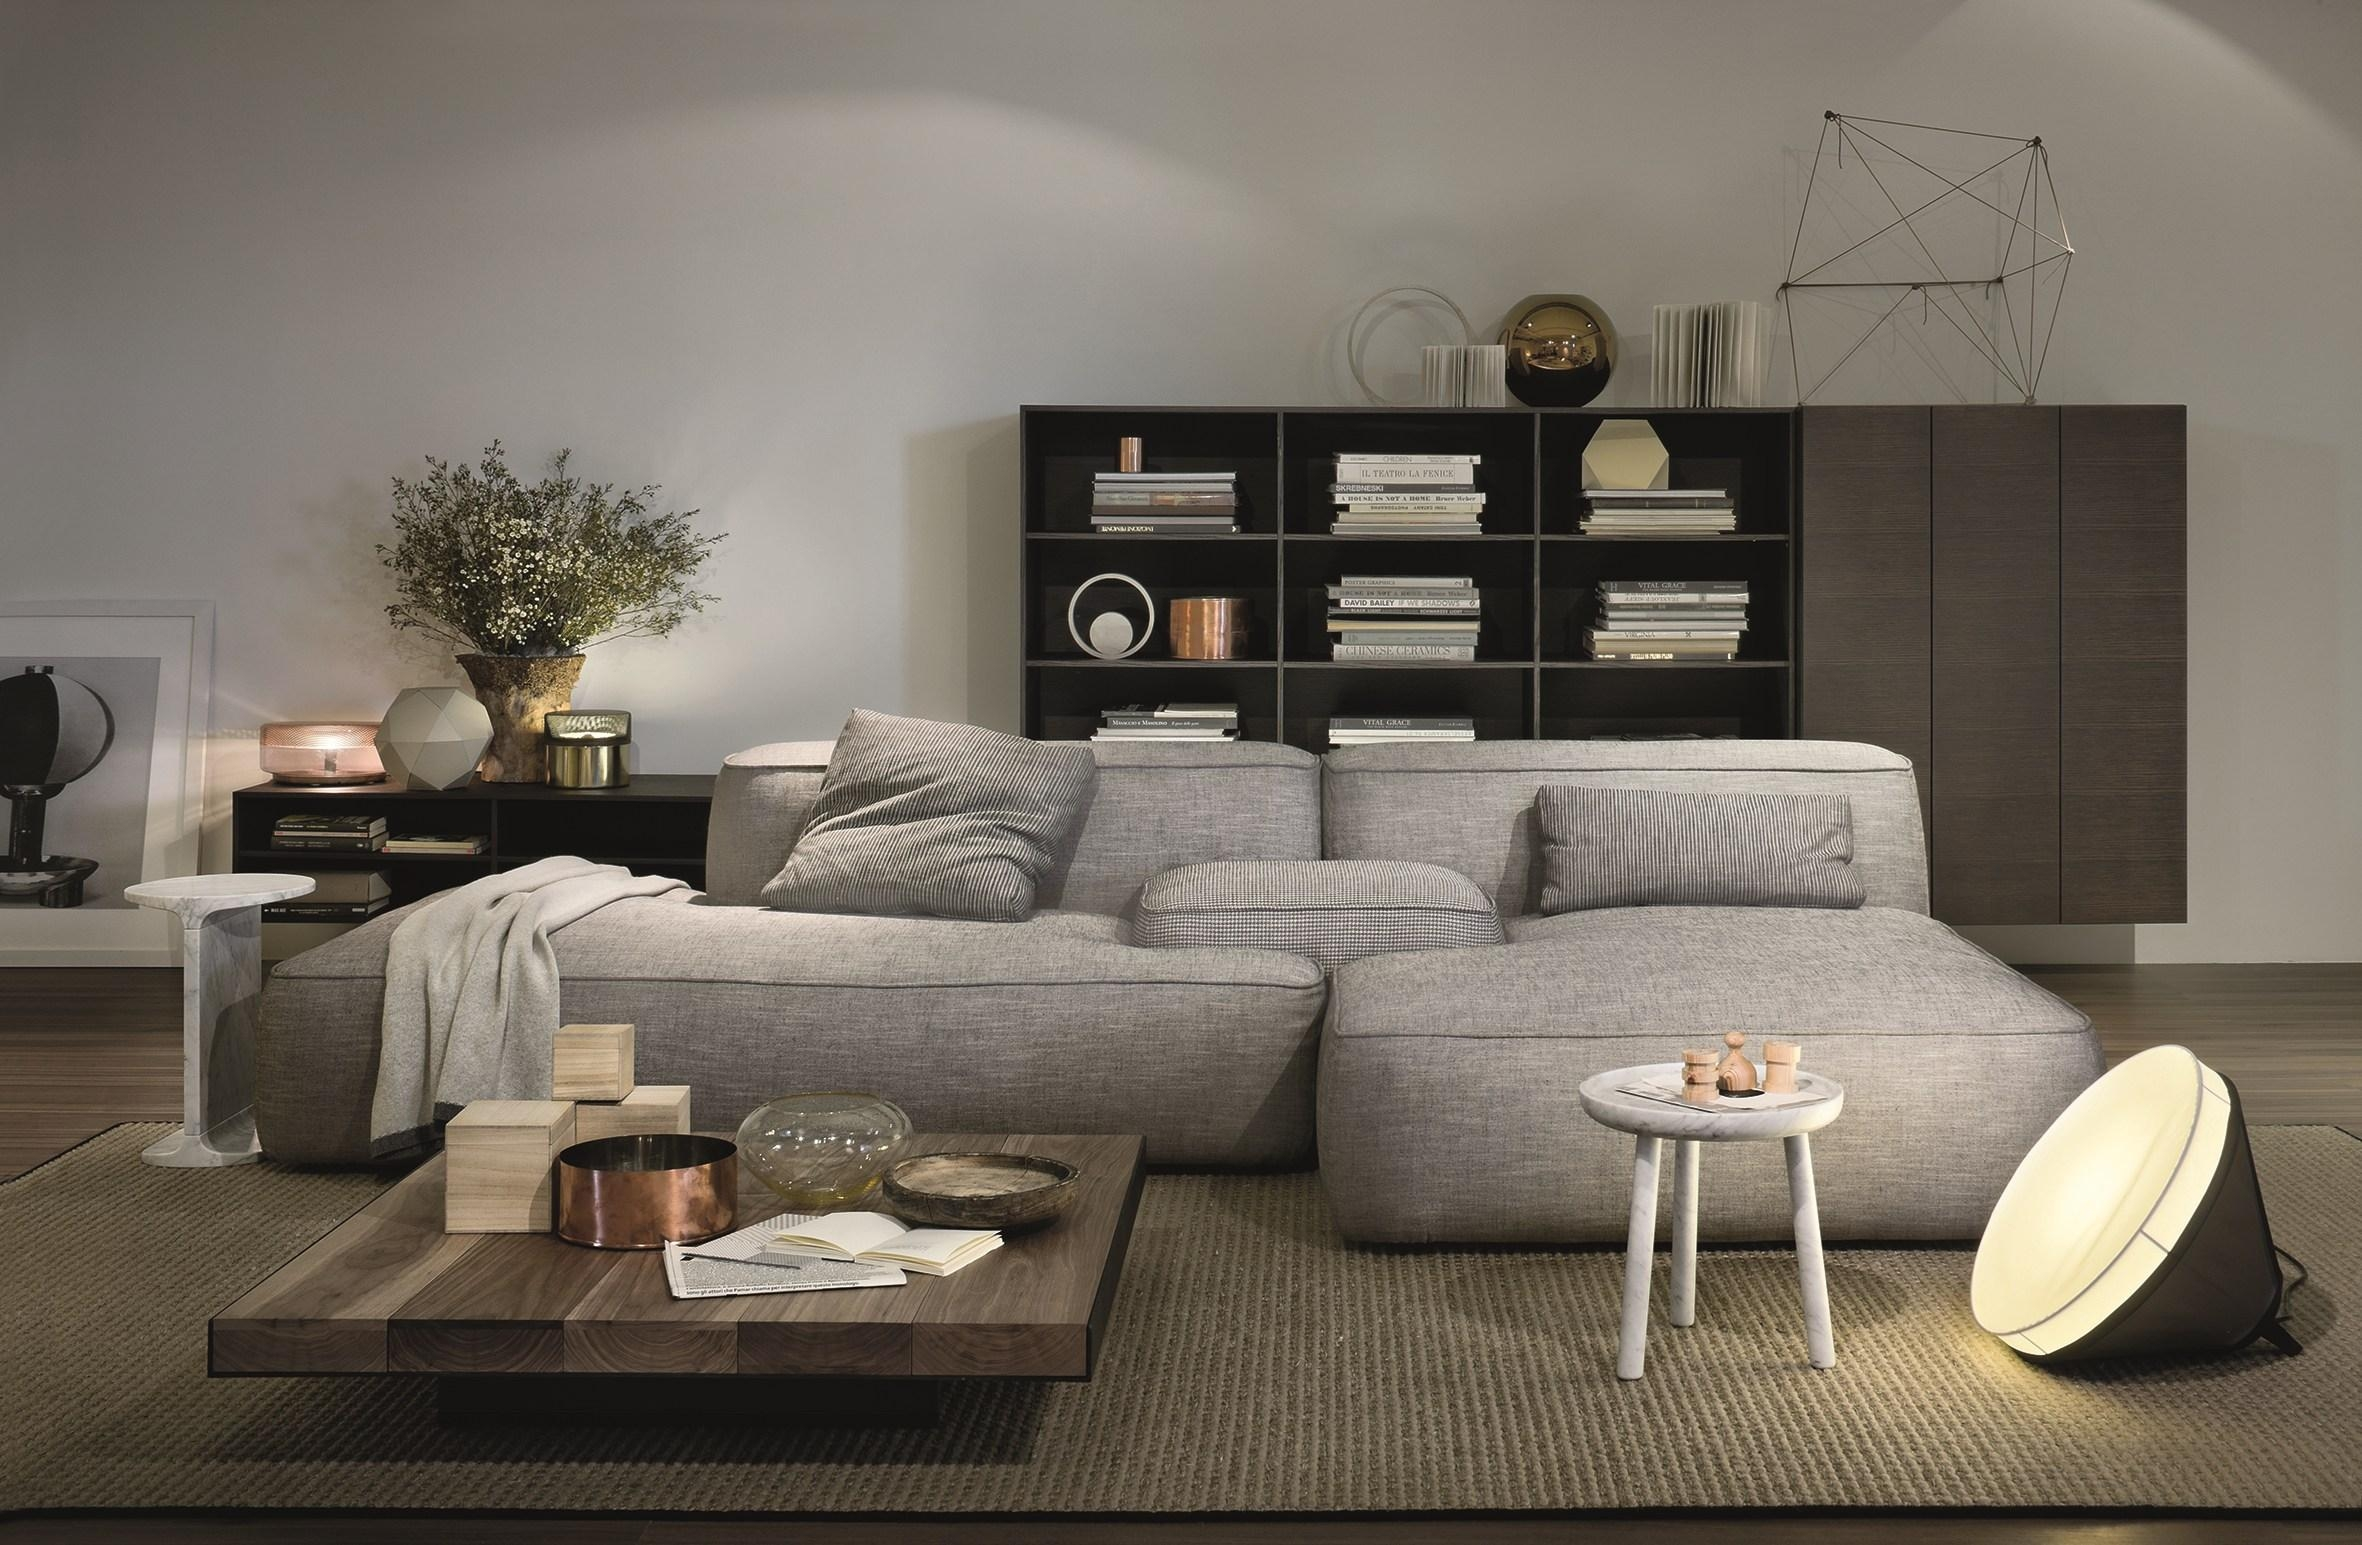 Cloud Sectional Sofa With Concept Gallery 38096 | Kengire In Cloud Sectional Sofas (Image 7 of 20)